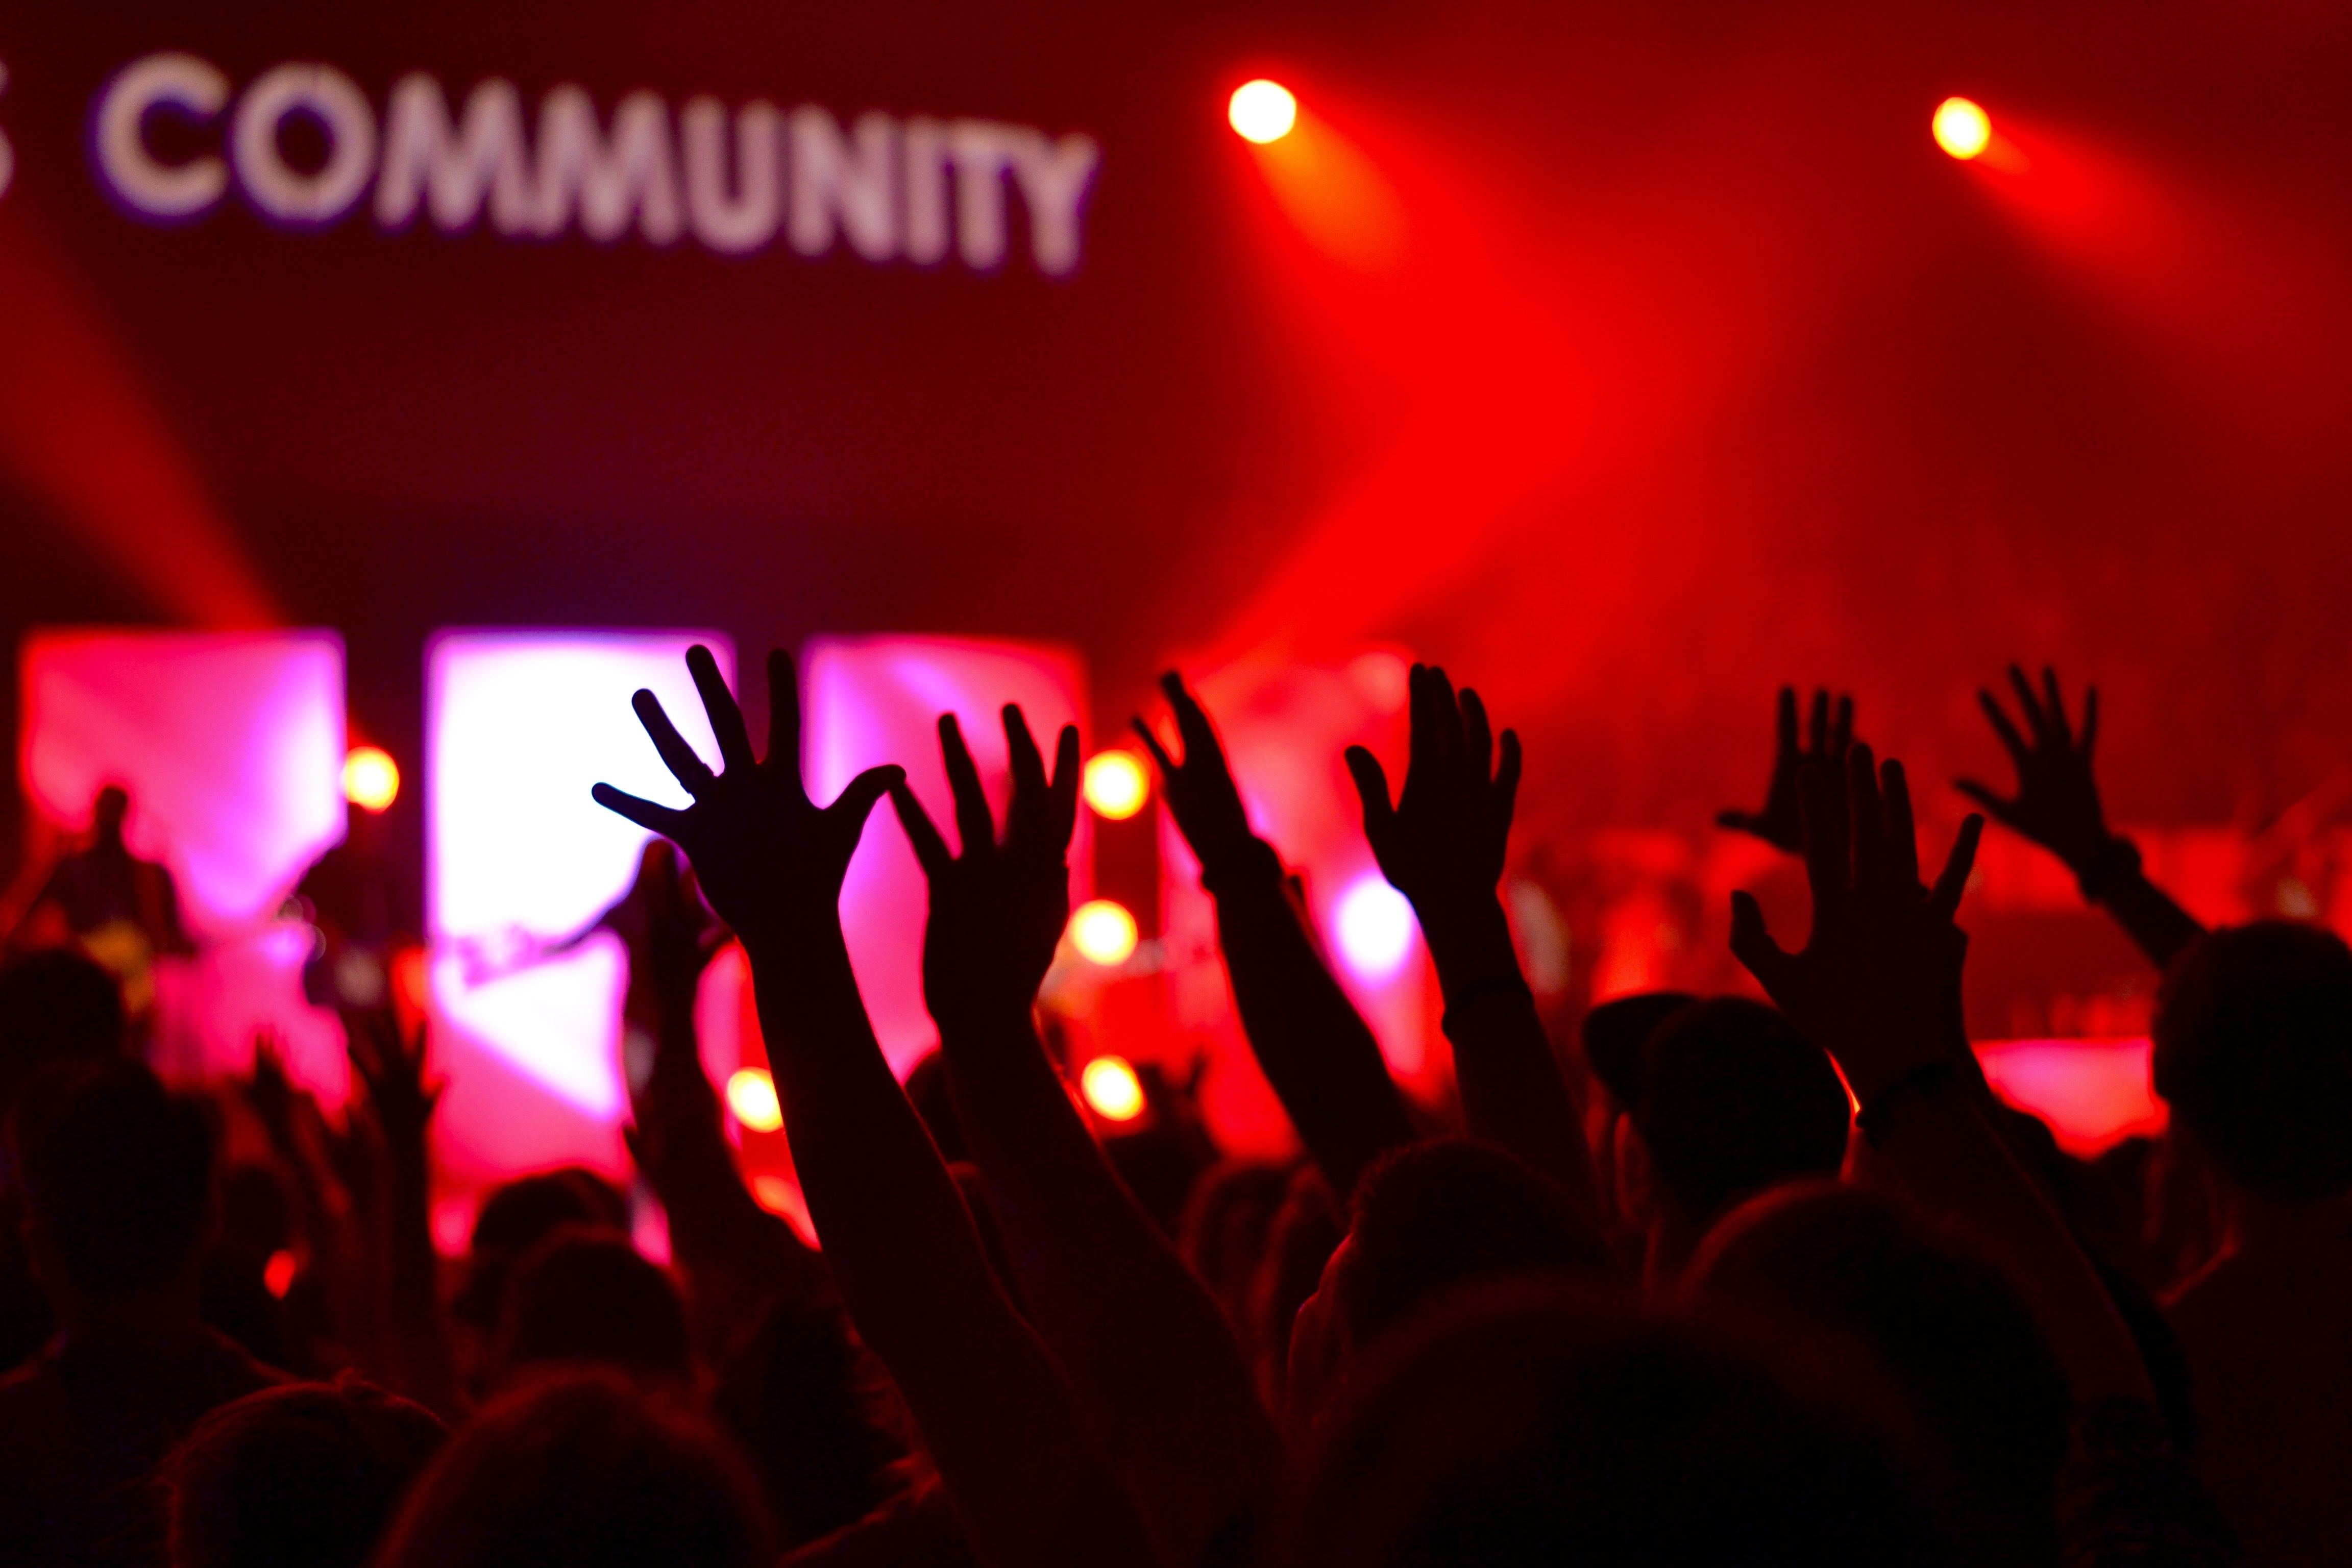 Common-Party-Community-004